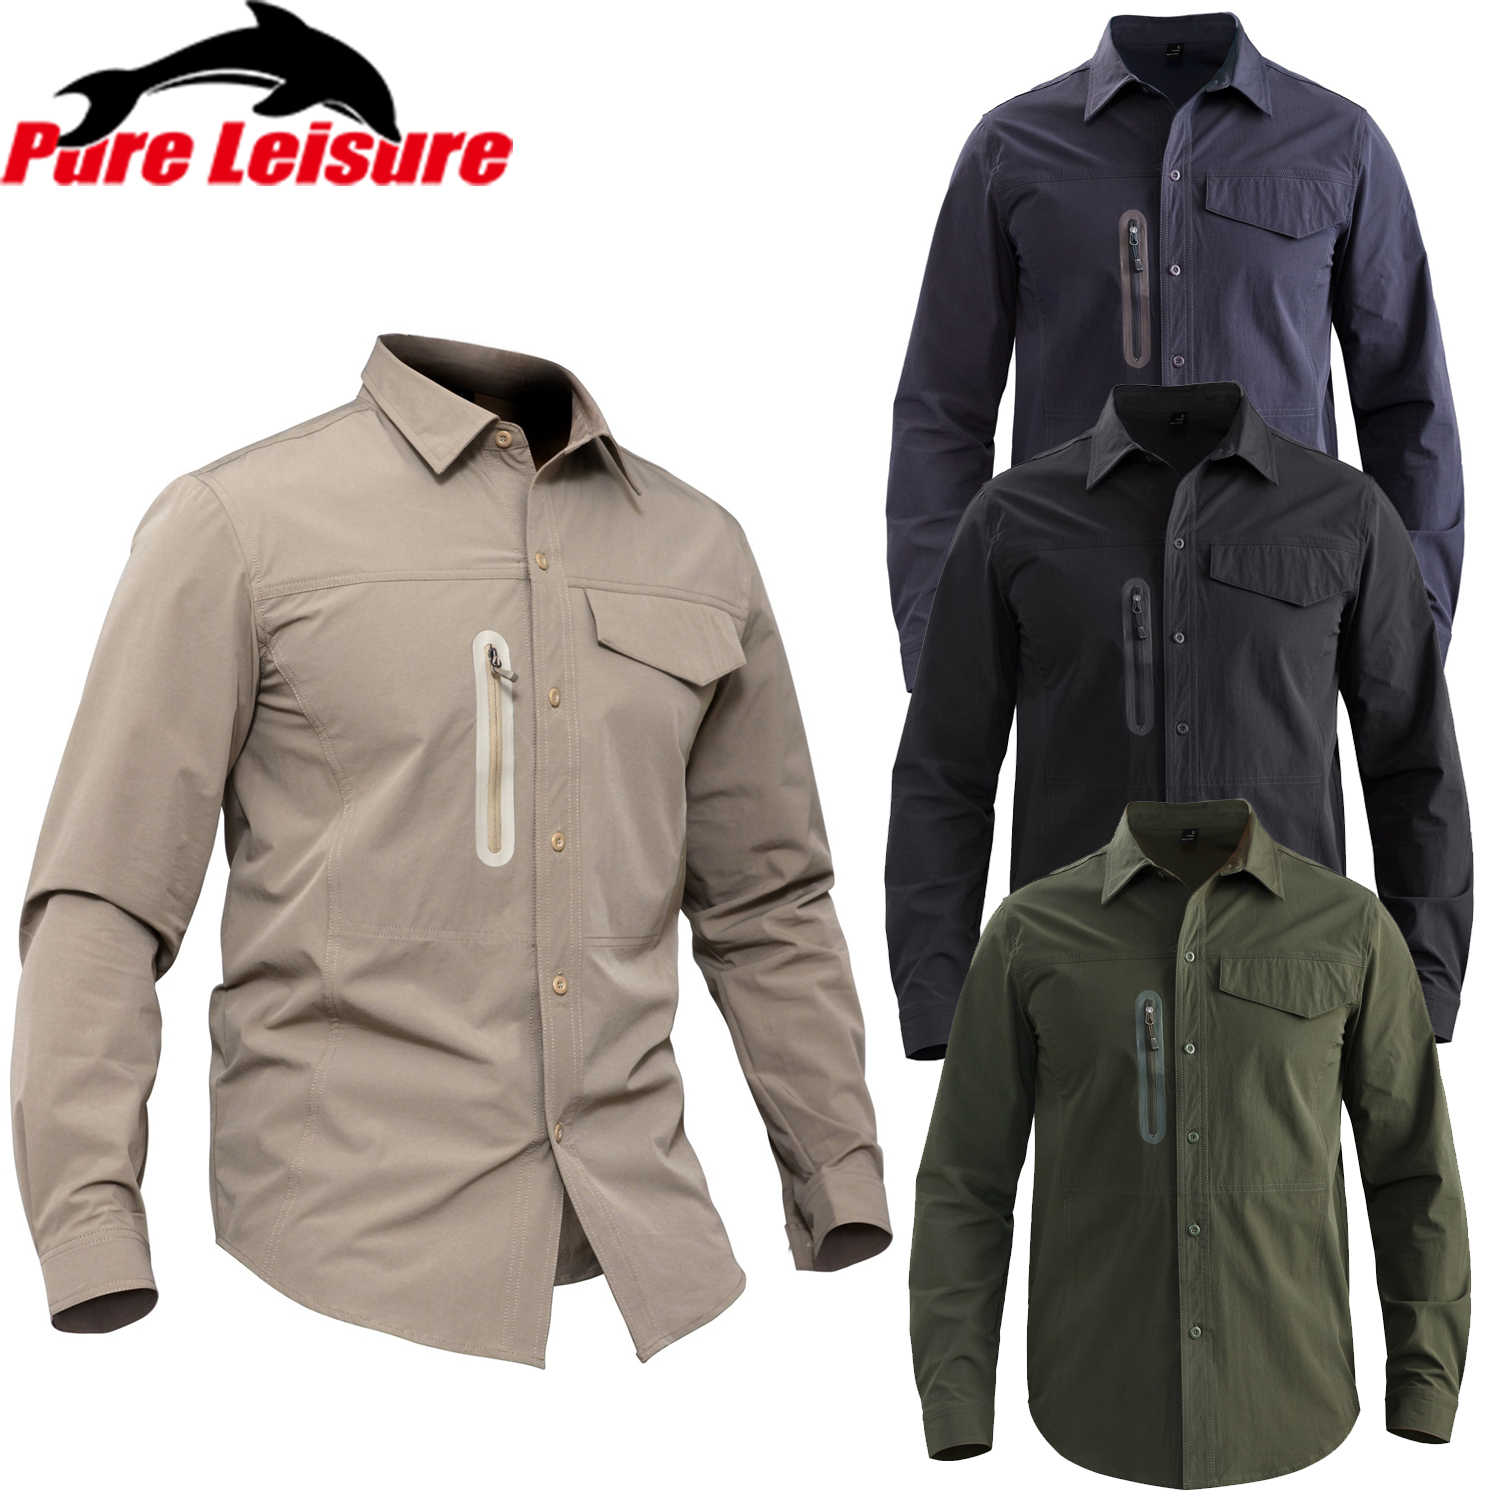 PureLeisure Mannen T-shirts Outdoor Vissen Militaire Tactical Business Mannen Sociale Shirts voor Sport Camping Jacht Shirt